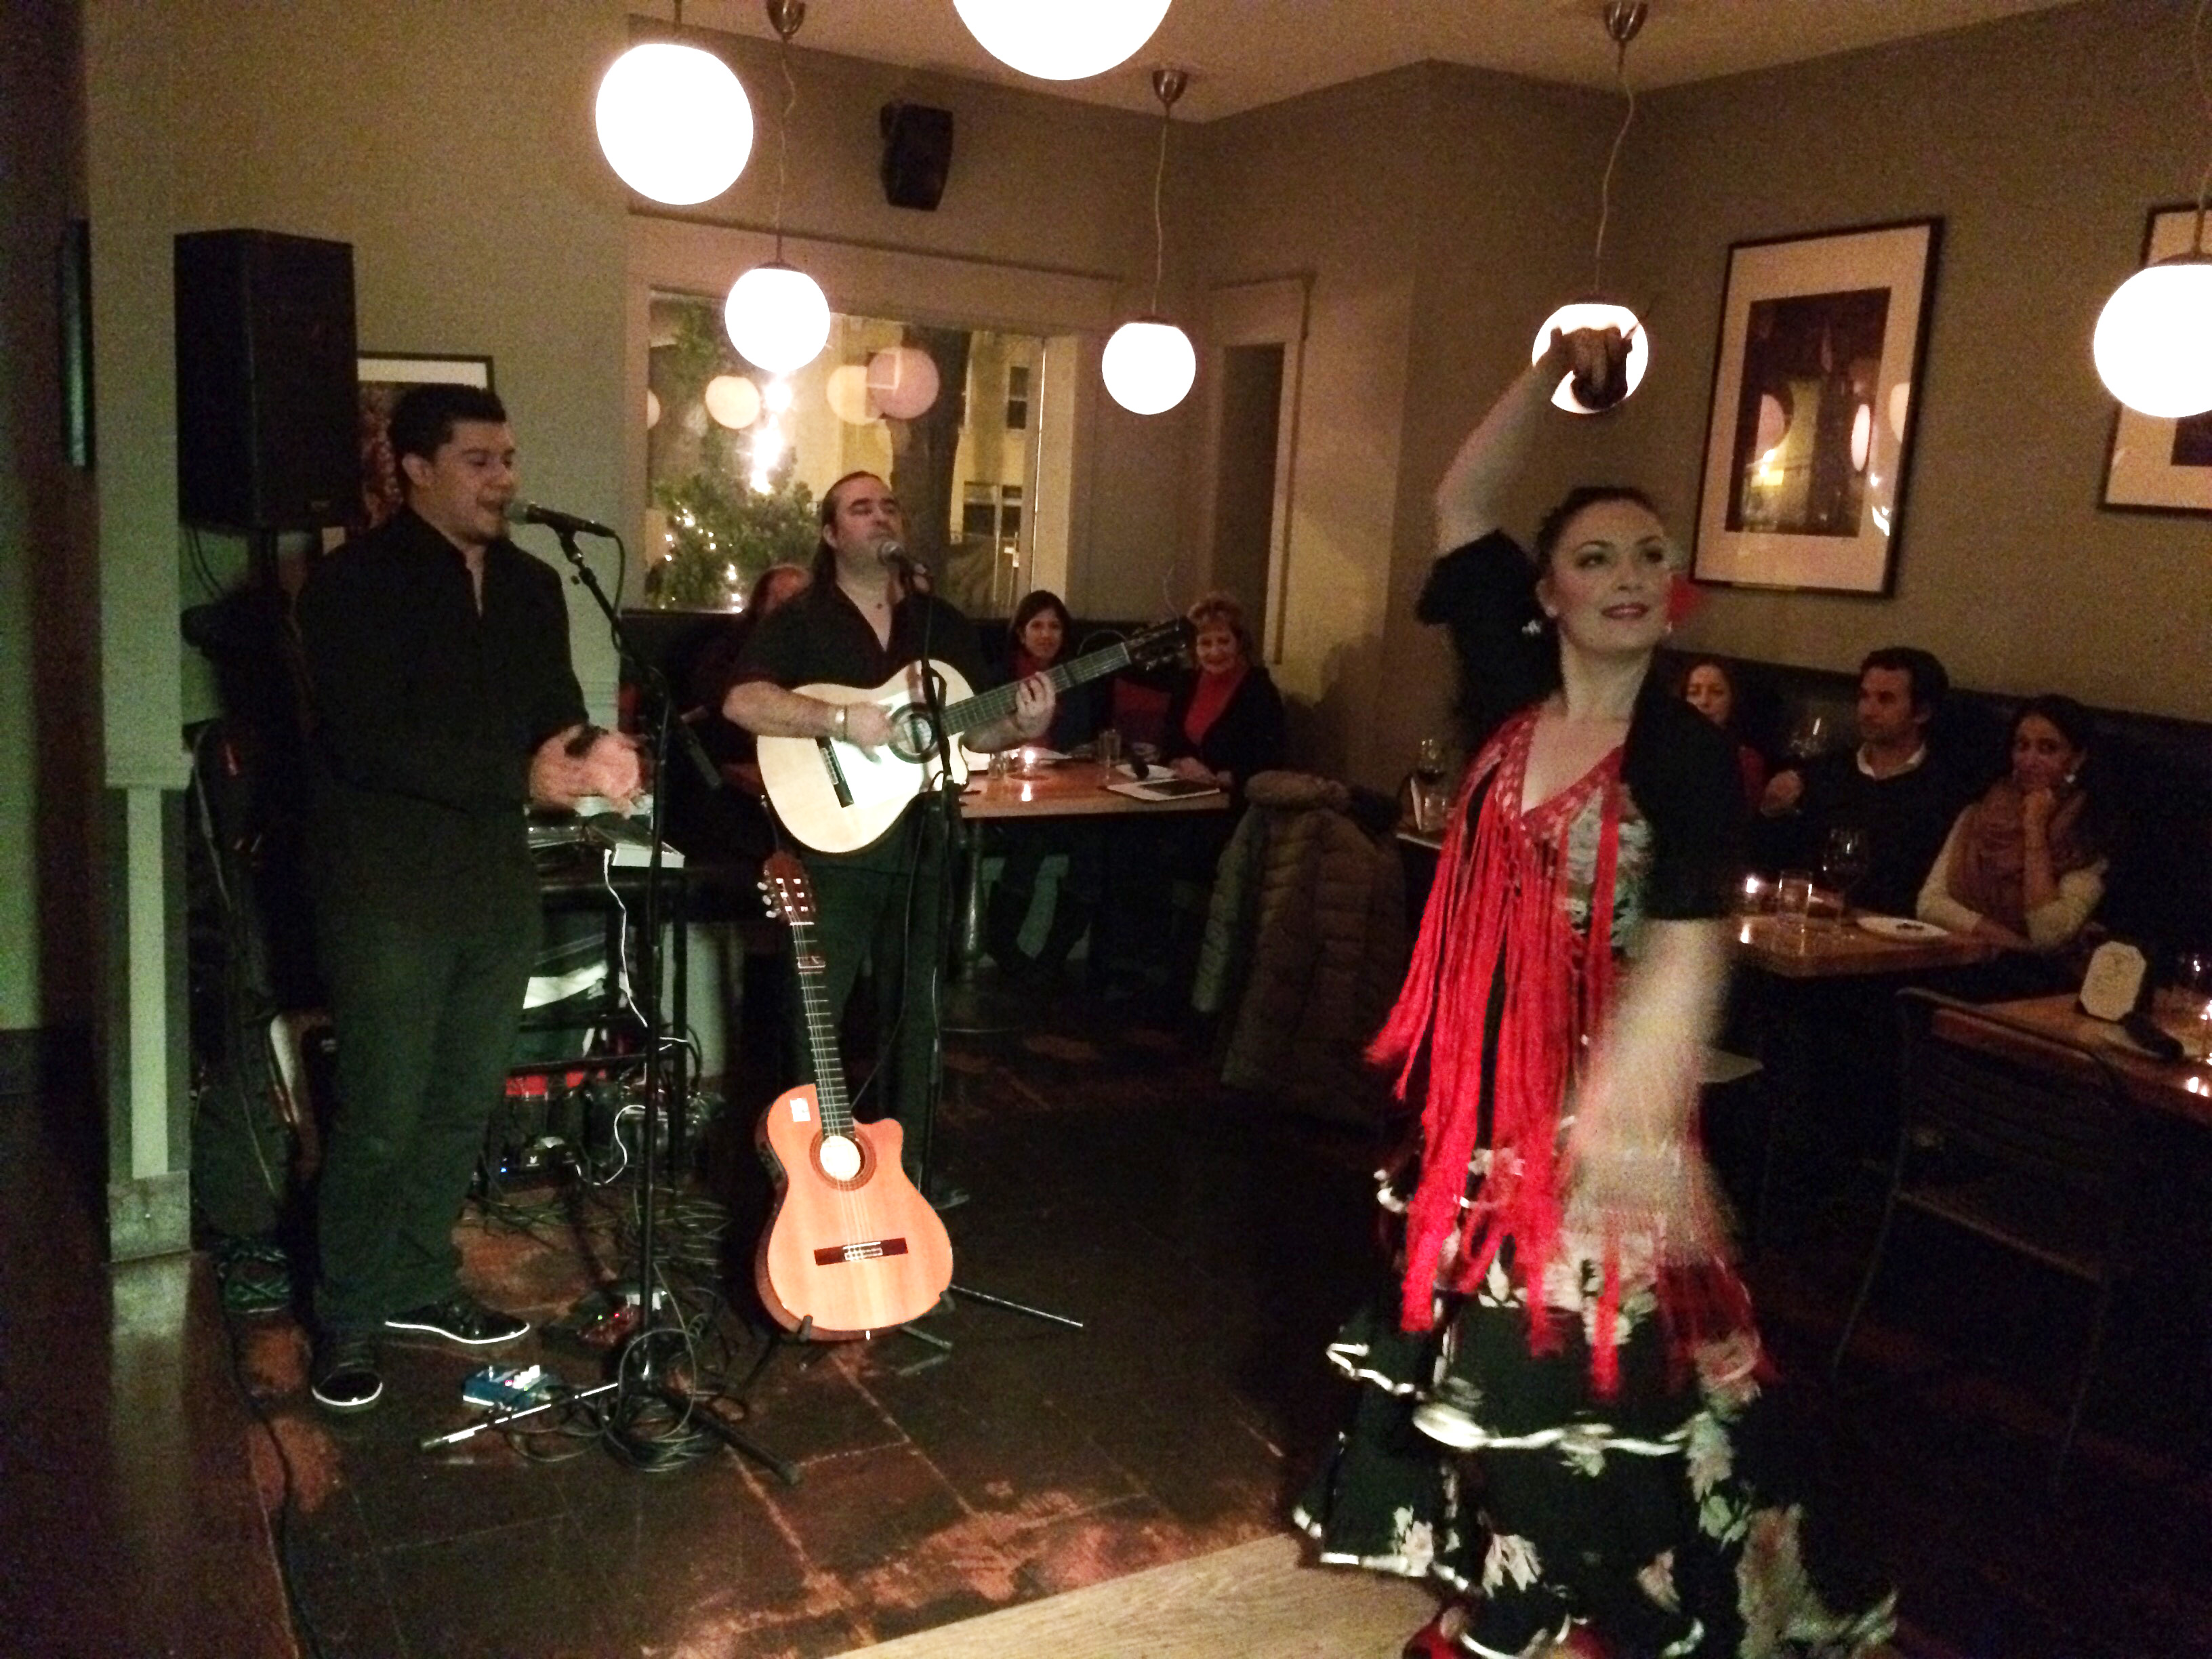 Pocket the airfare: Local bar offers taste of Spain with flamenco, Spanish wines